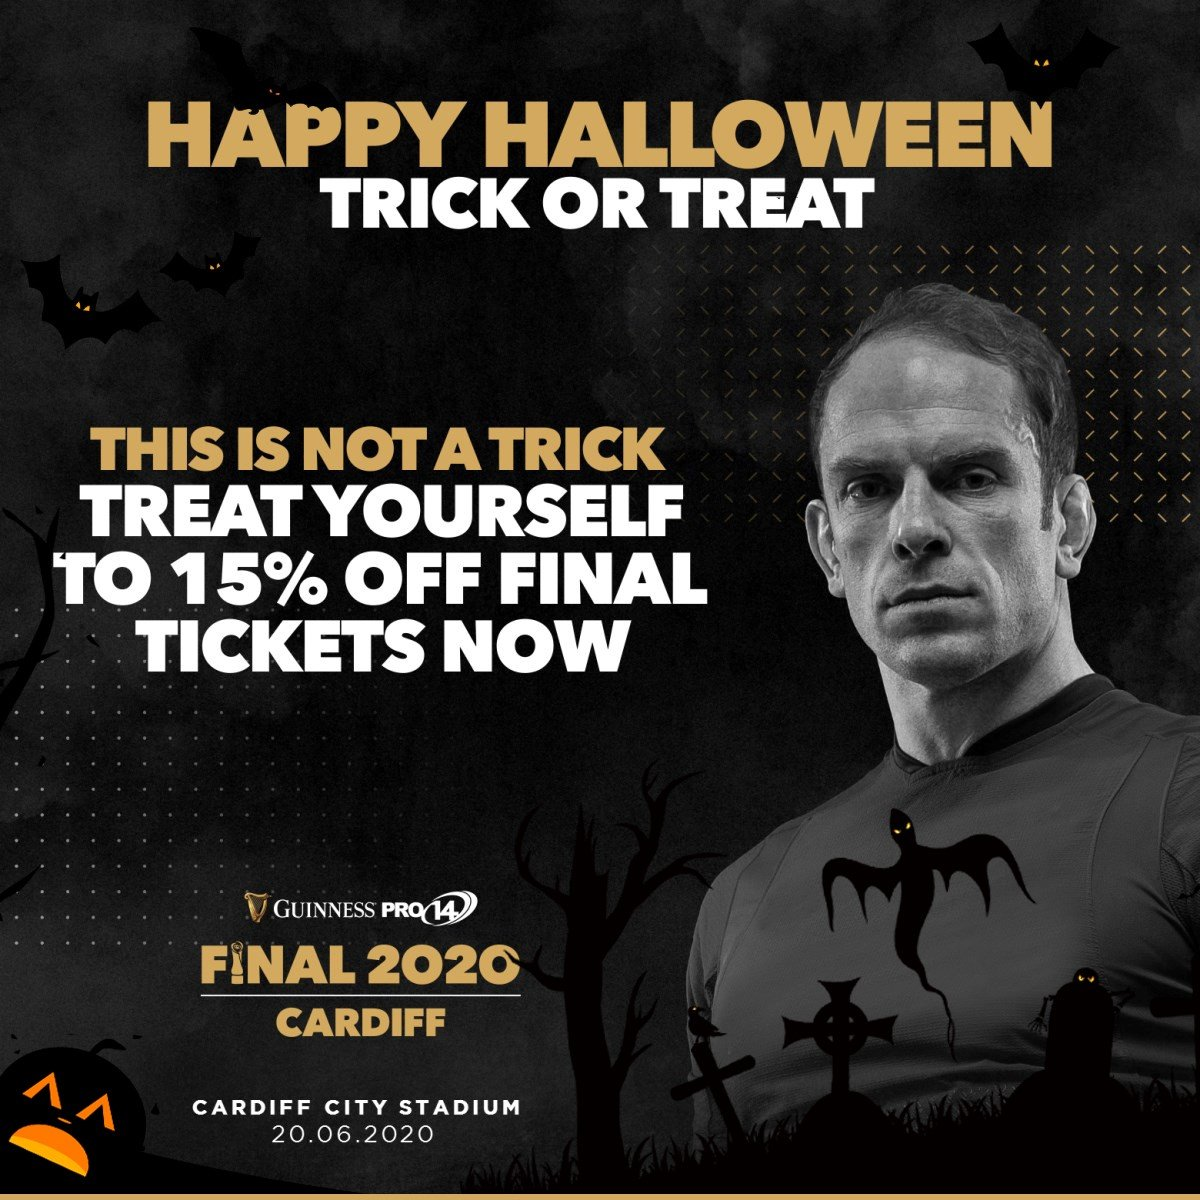 🎃 Happy Halloween 🎃 This isn't a trick! 🎩 👻 Treat yourself to 15% off Final tickets here 👉 pro14rugby.org/final/ #GuinnessPRO14 #halloween2019